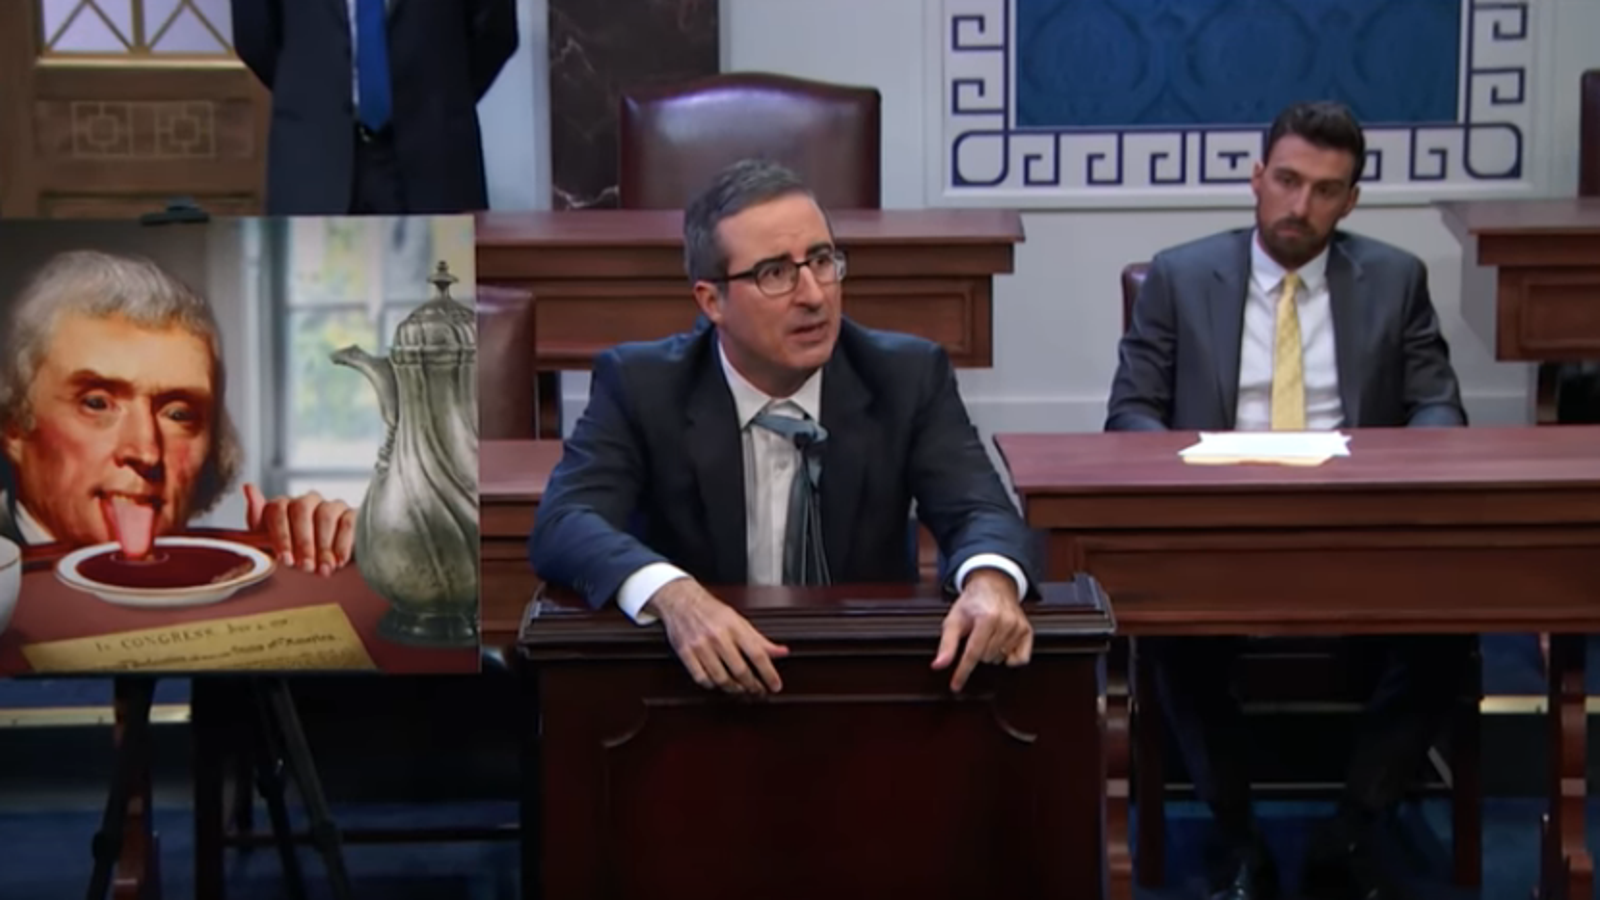 John Oliver filibusters the filibuster on Last Week Tonight